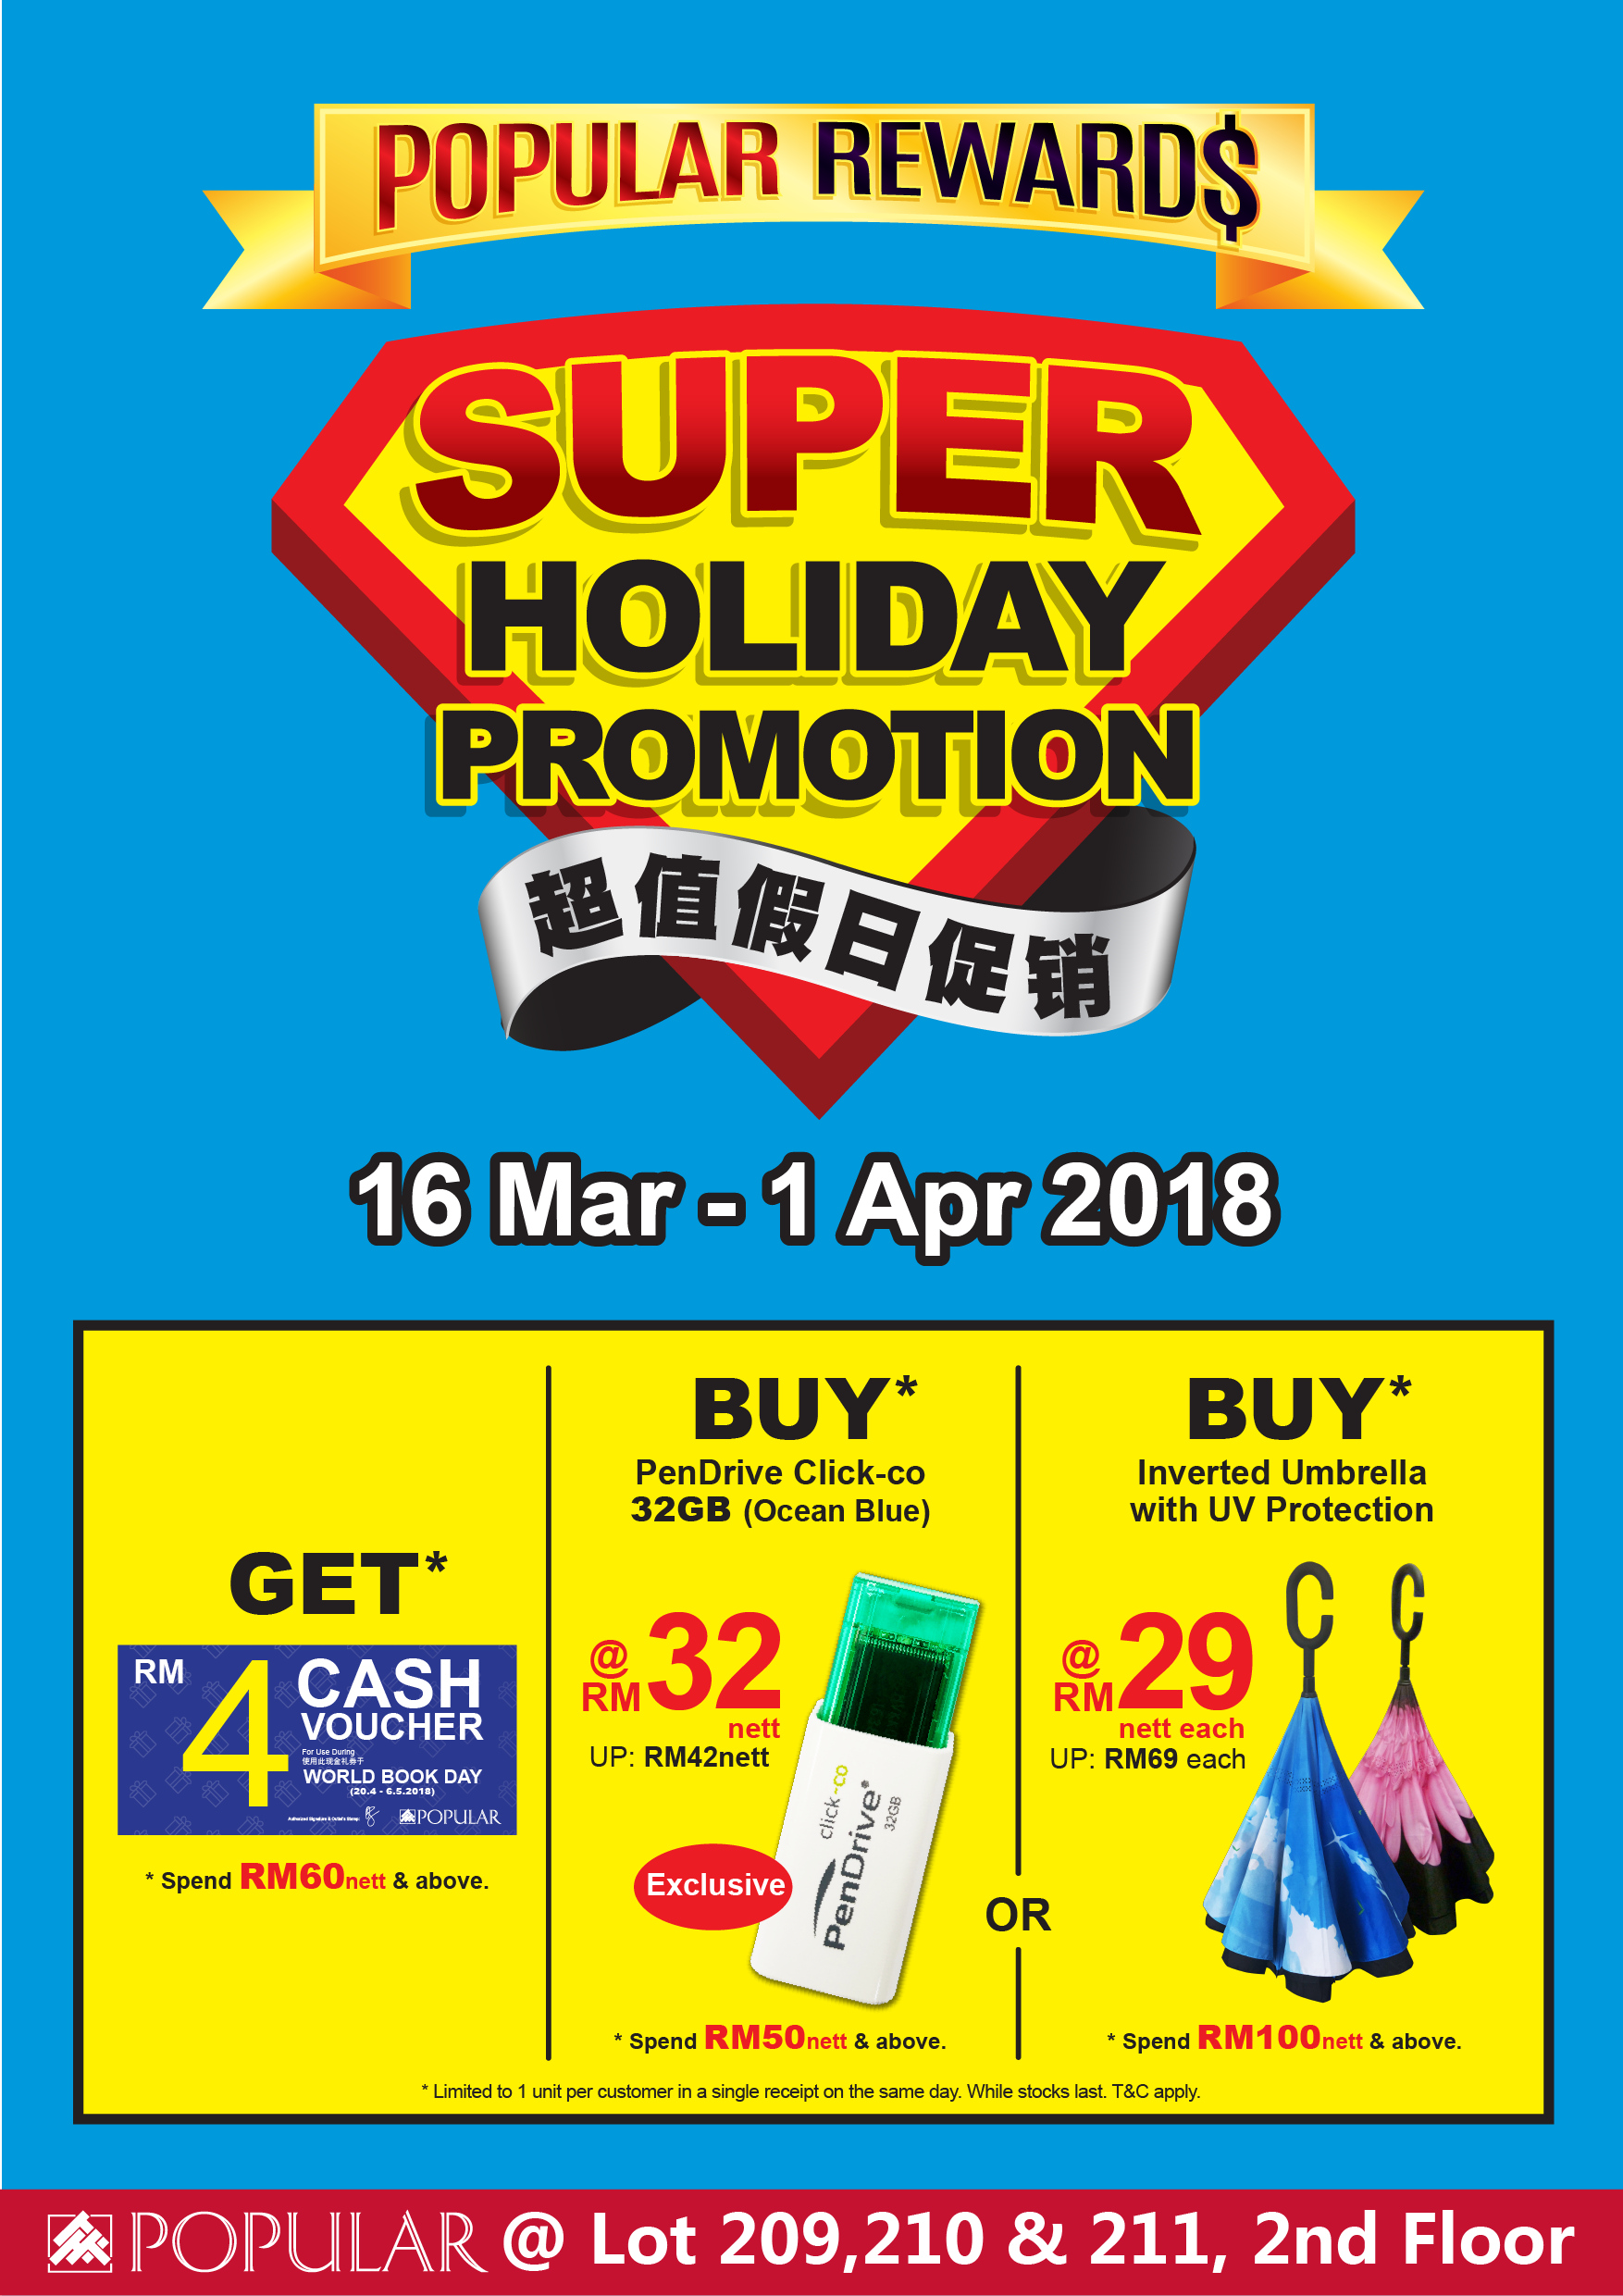 POPULAR: Super Holiday Promotion